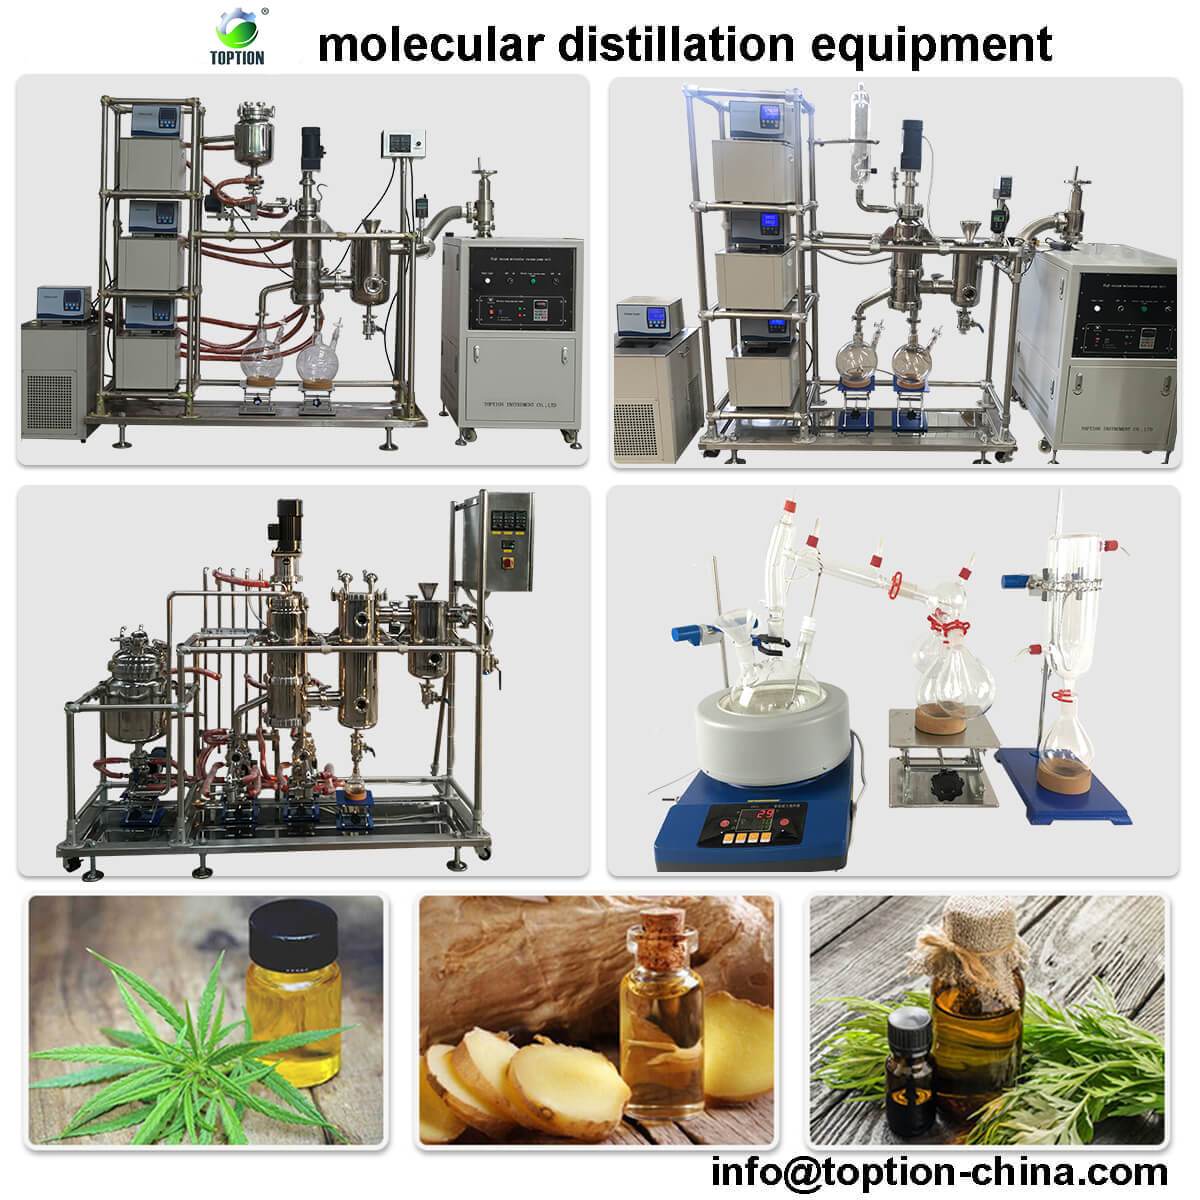 cbd molecular distillation equipment